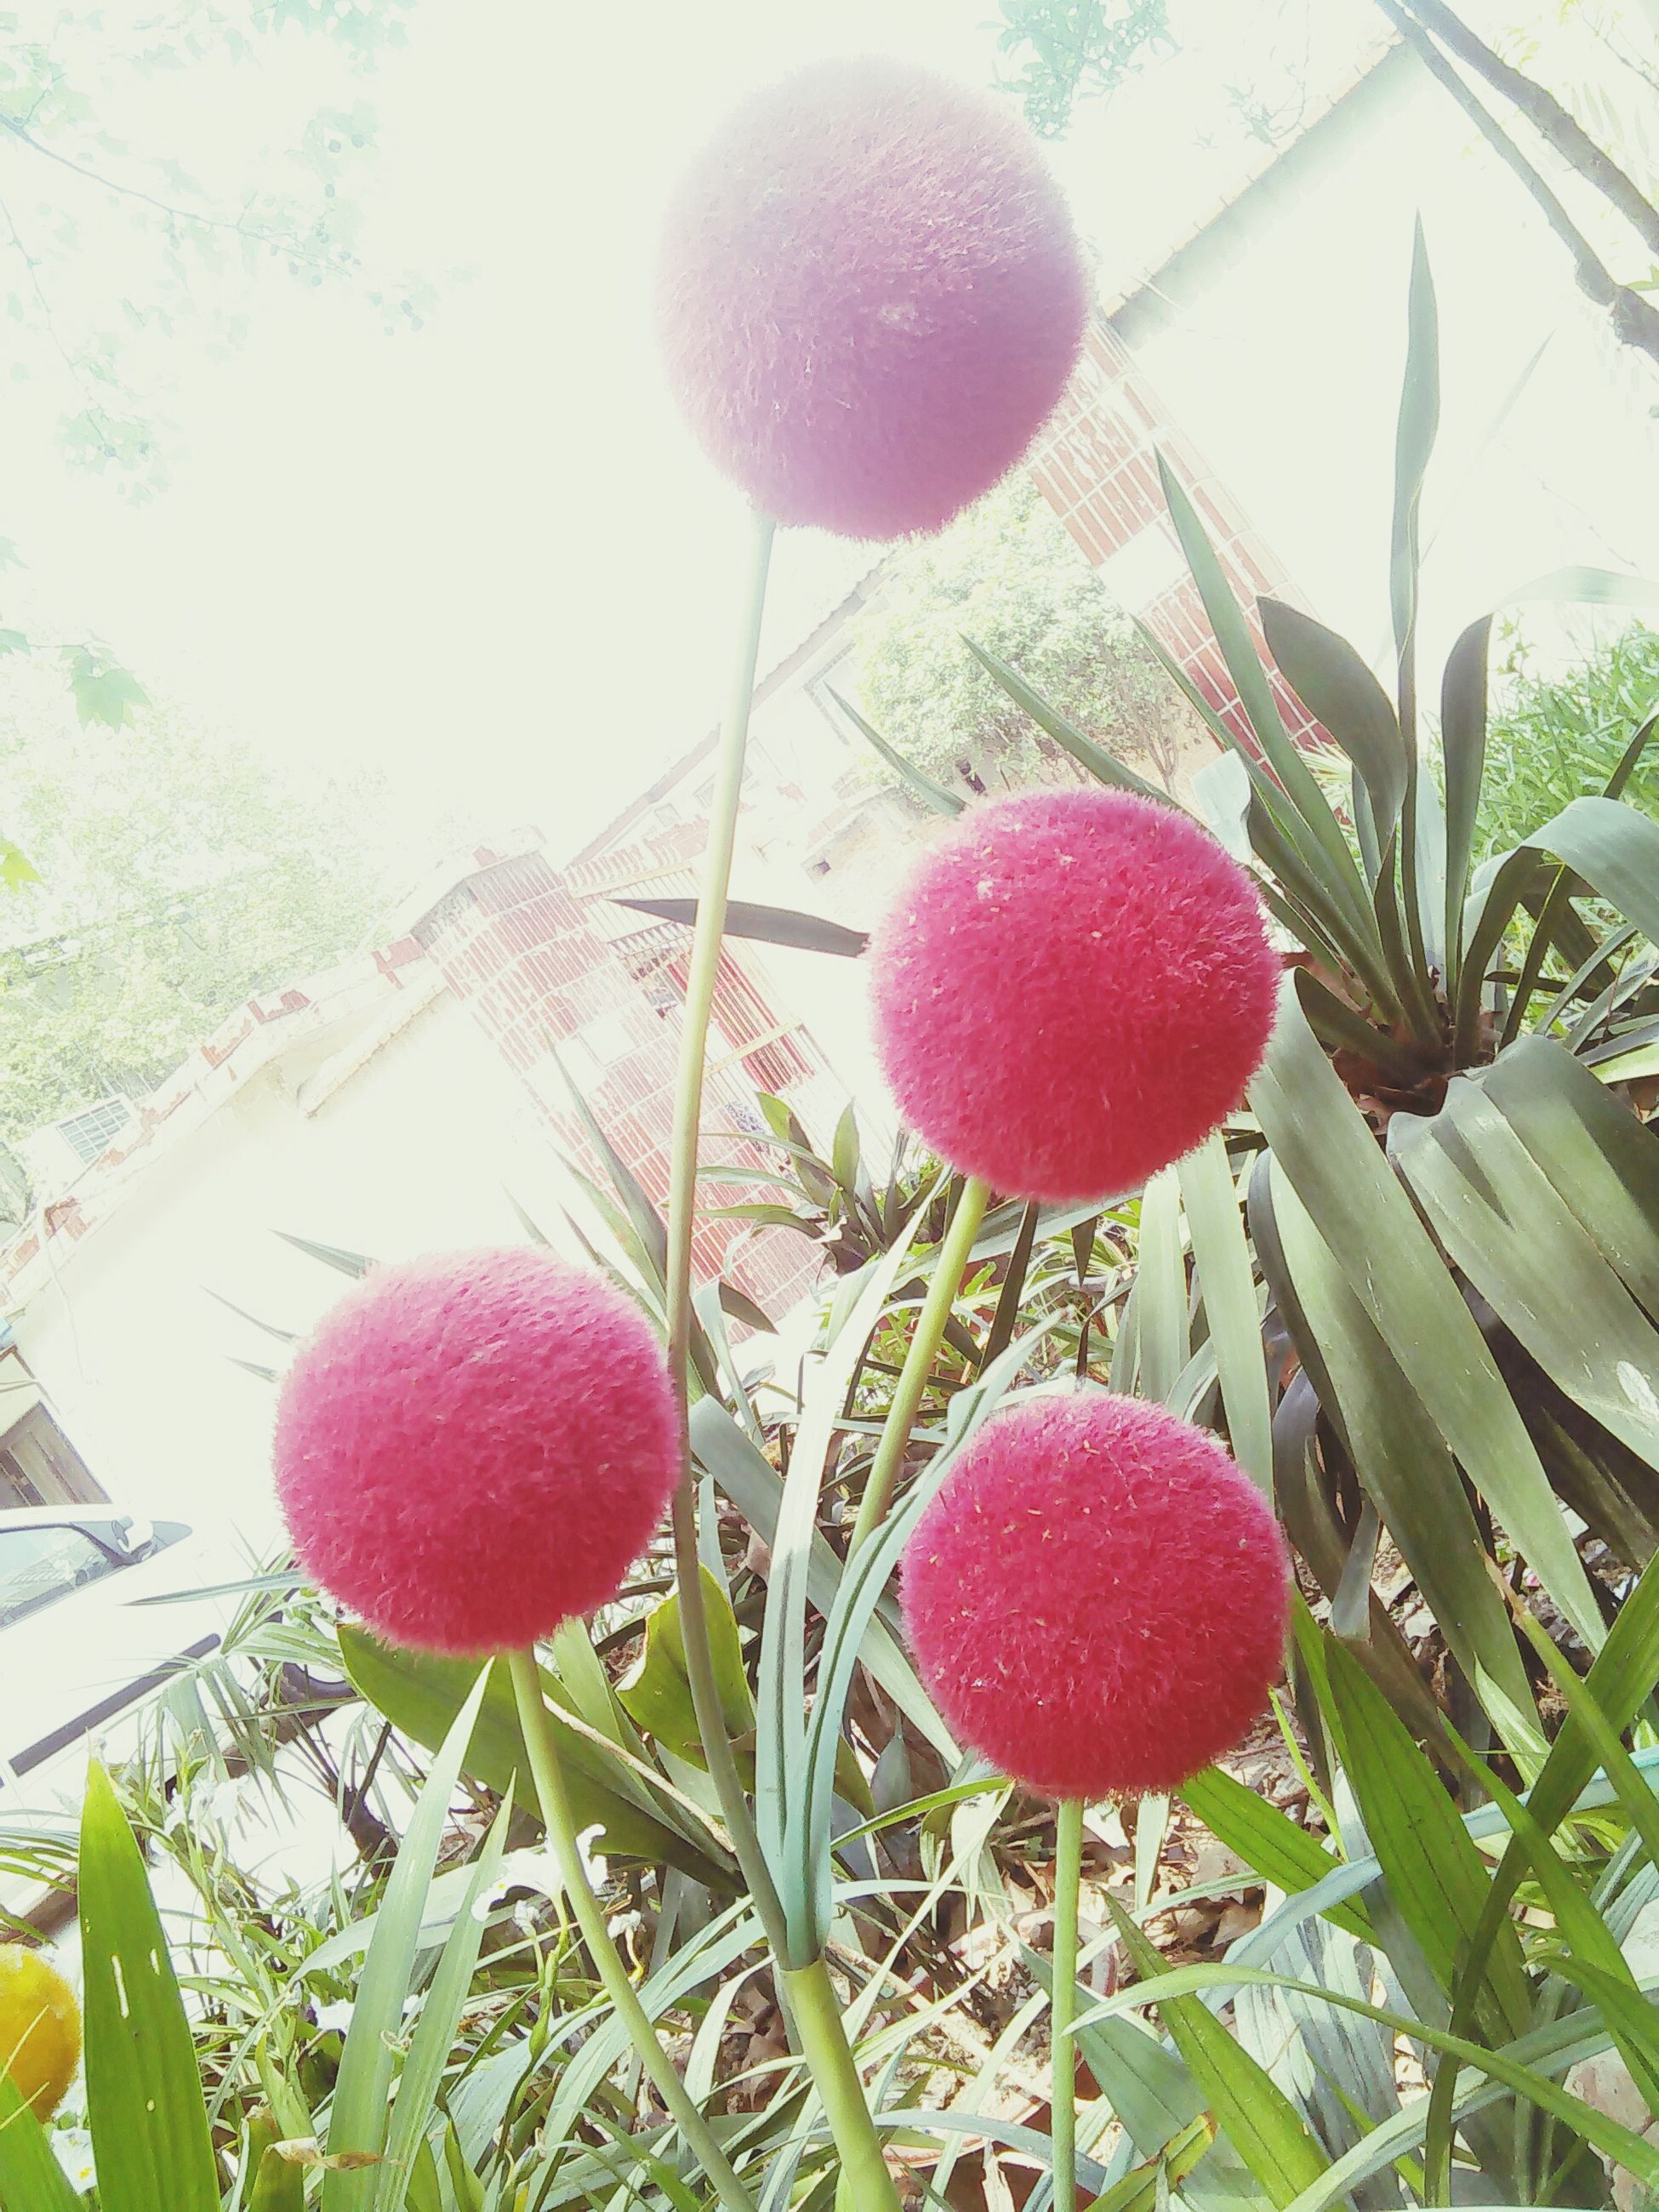 fruit, food and drink, freshness, growth, red, food, tree, close-up, hanging, healthy eating, ripe, leaf, plant, nature, growing, branch, berry fruit, day, no people, stem